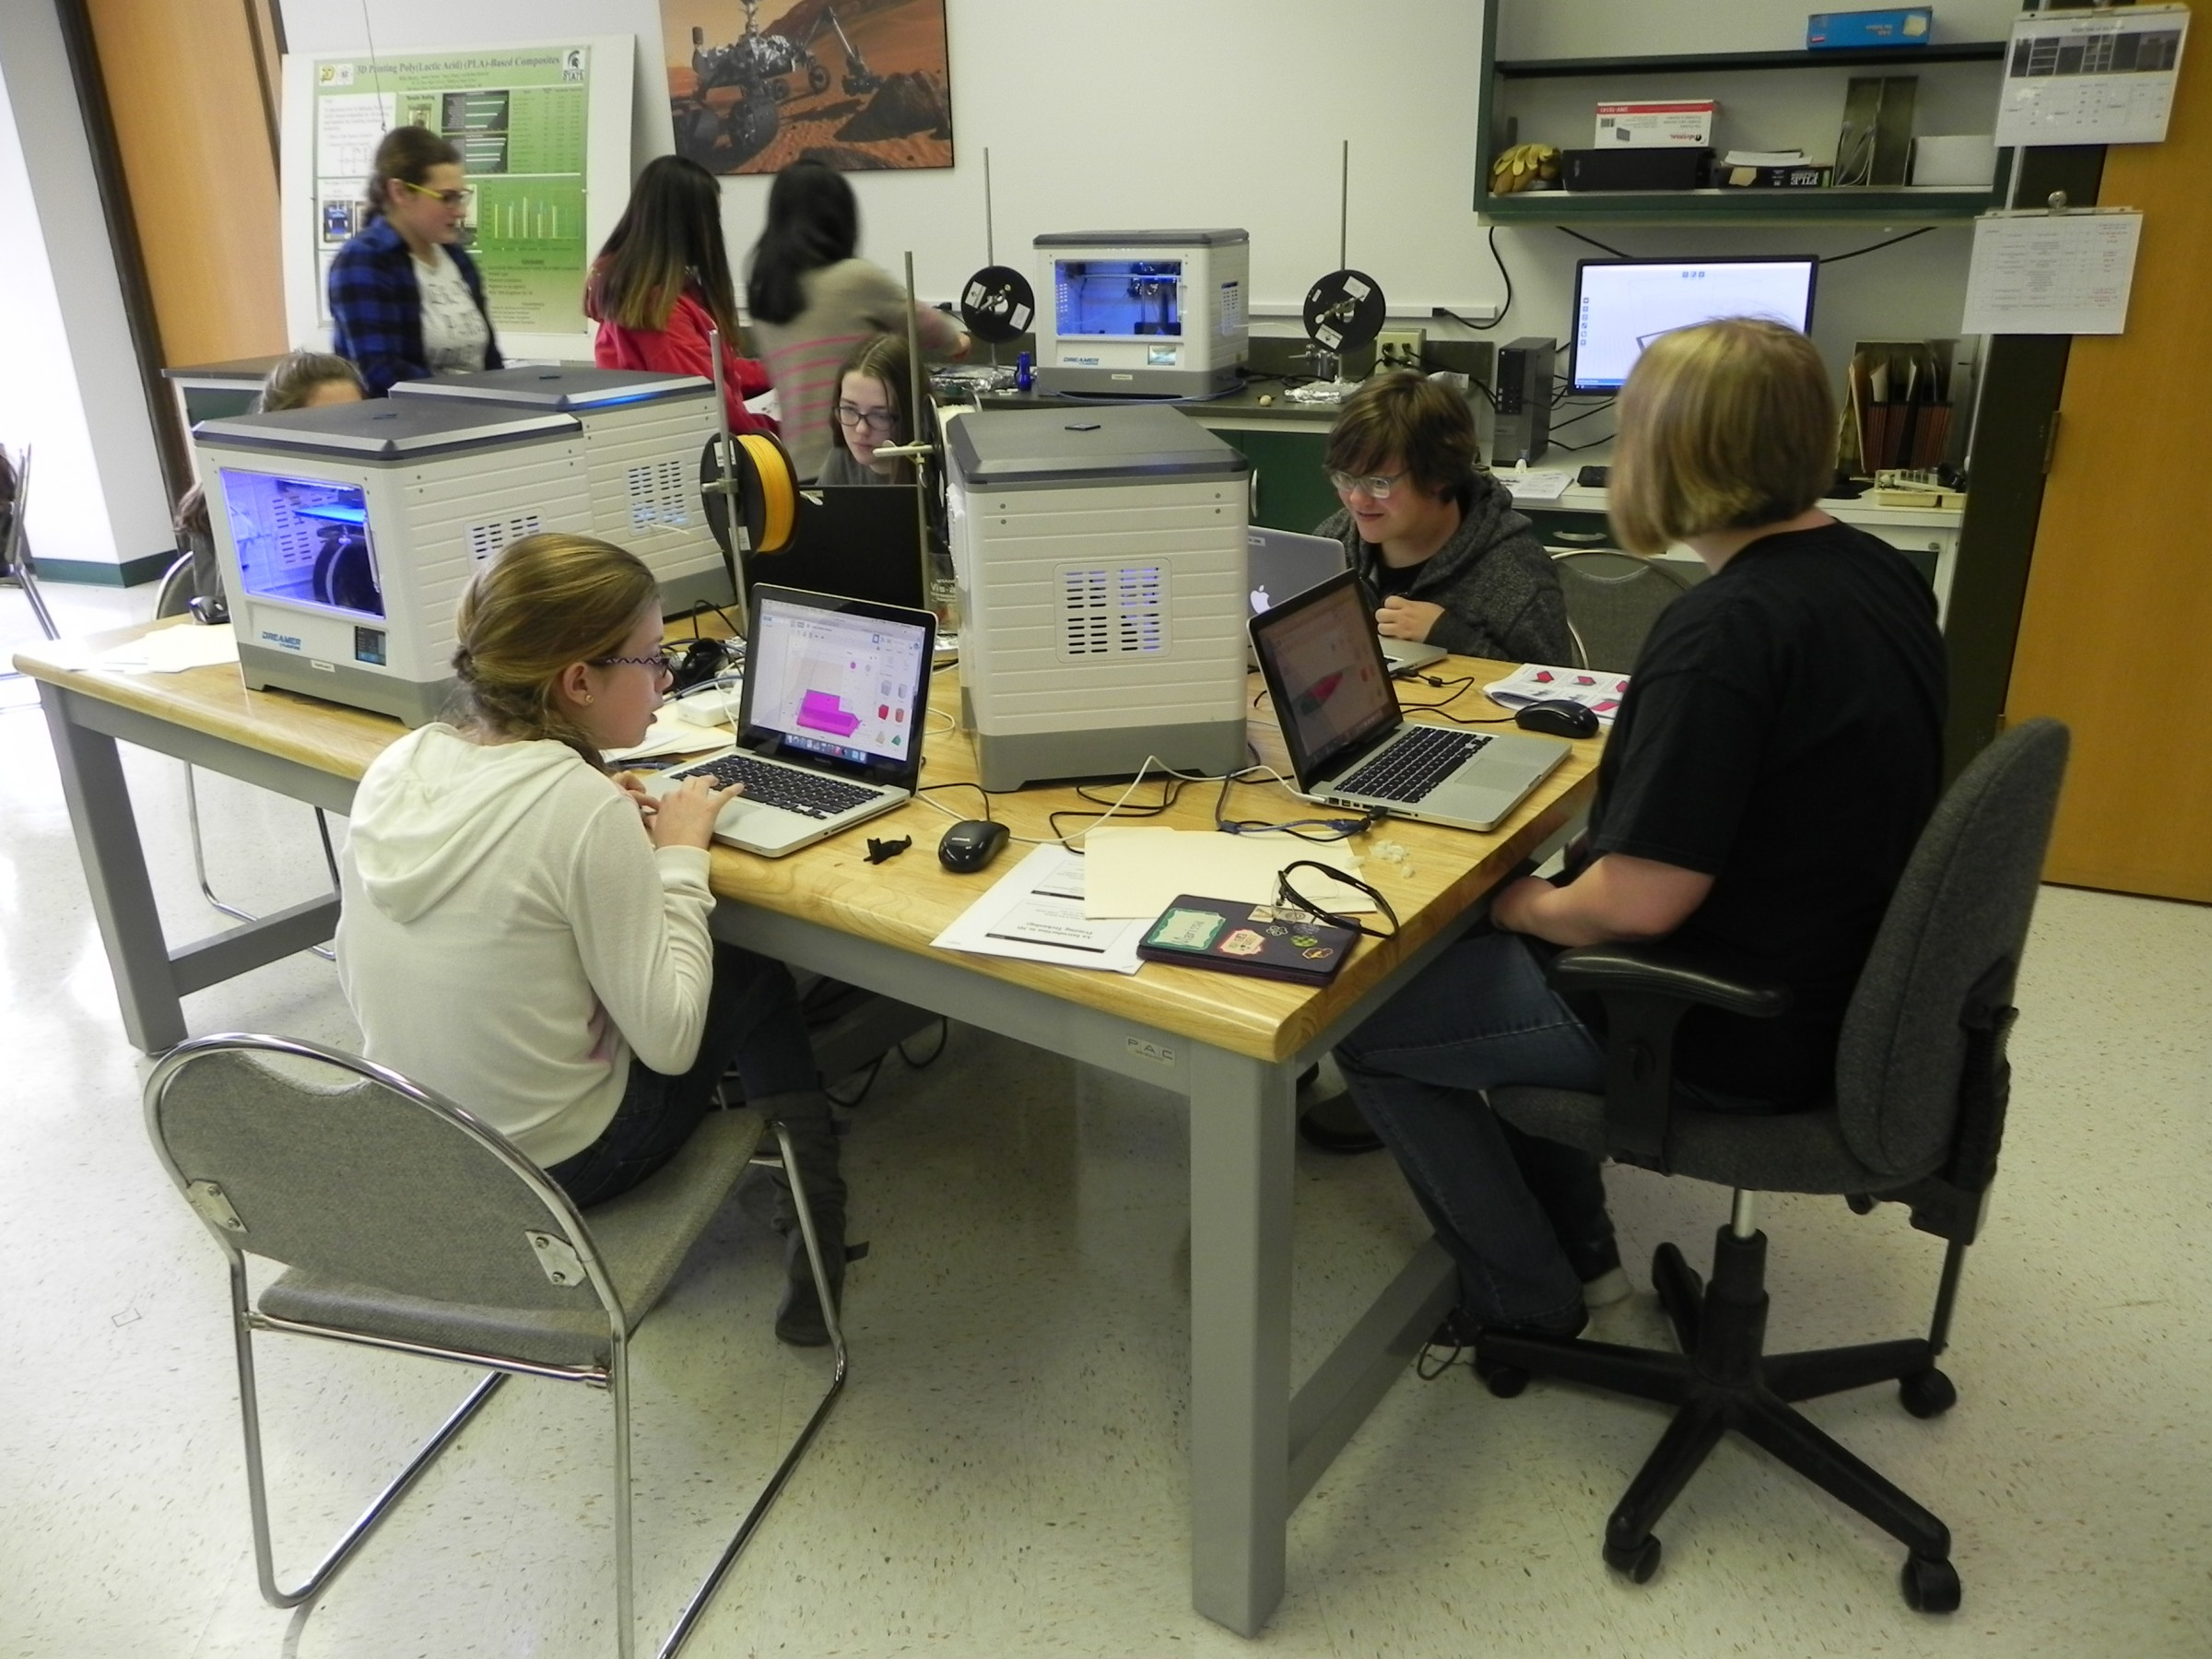 Group of students working in 3D printing lab